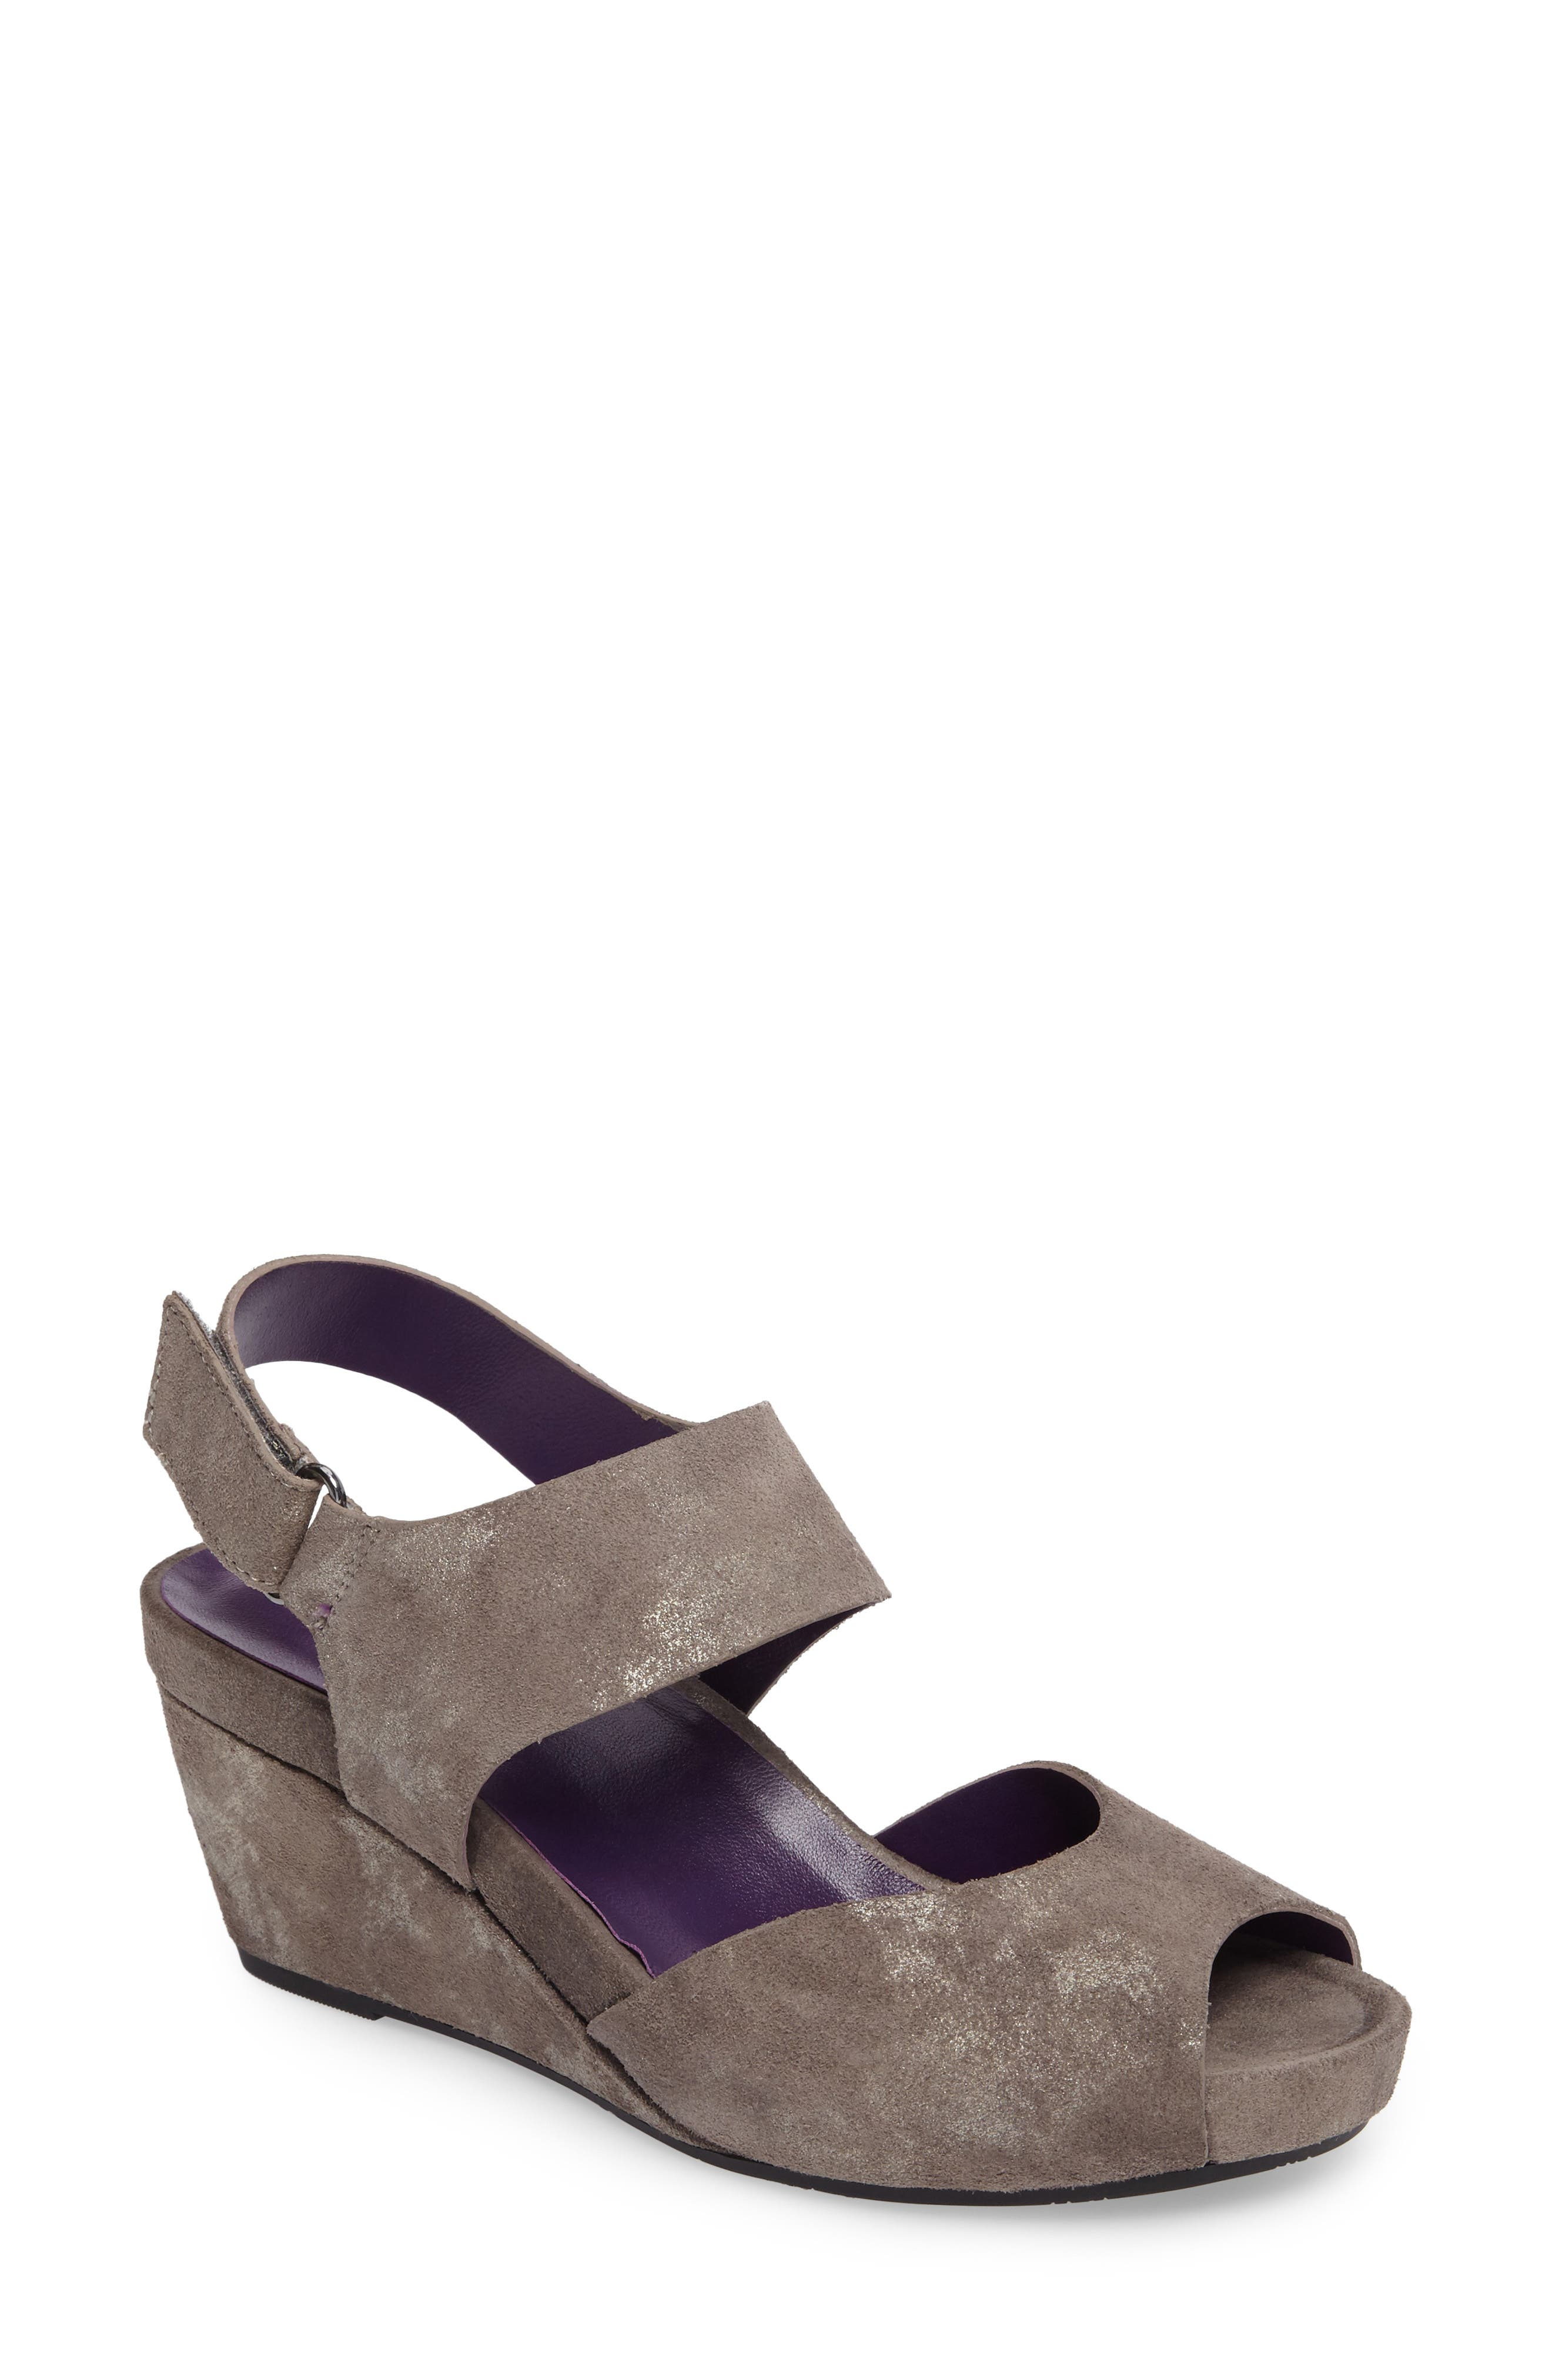 Ilex Wedge Sandal,                             Main thumbnail 1, color,                             Taupe Suede